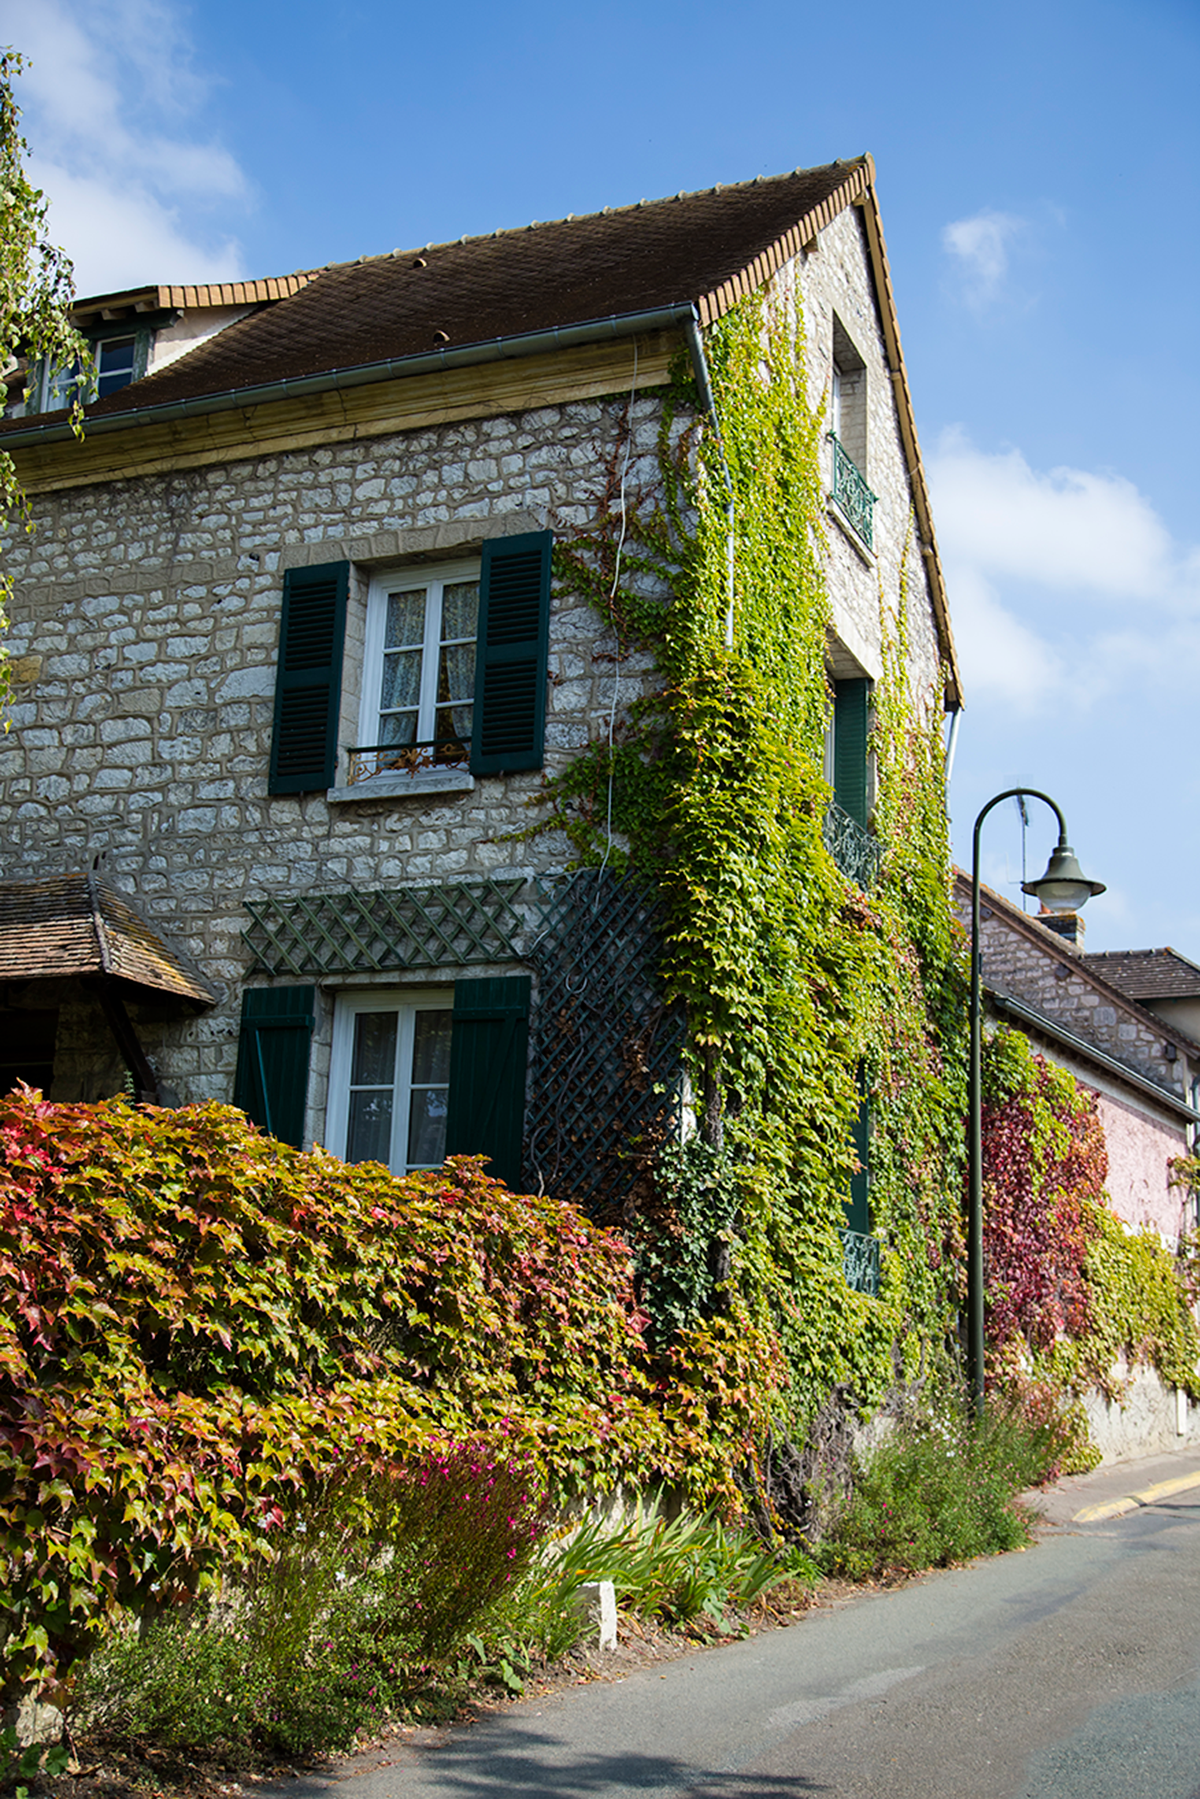 House in Giverny France